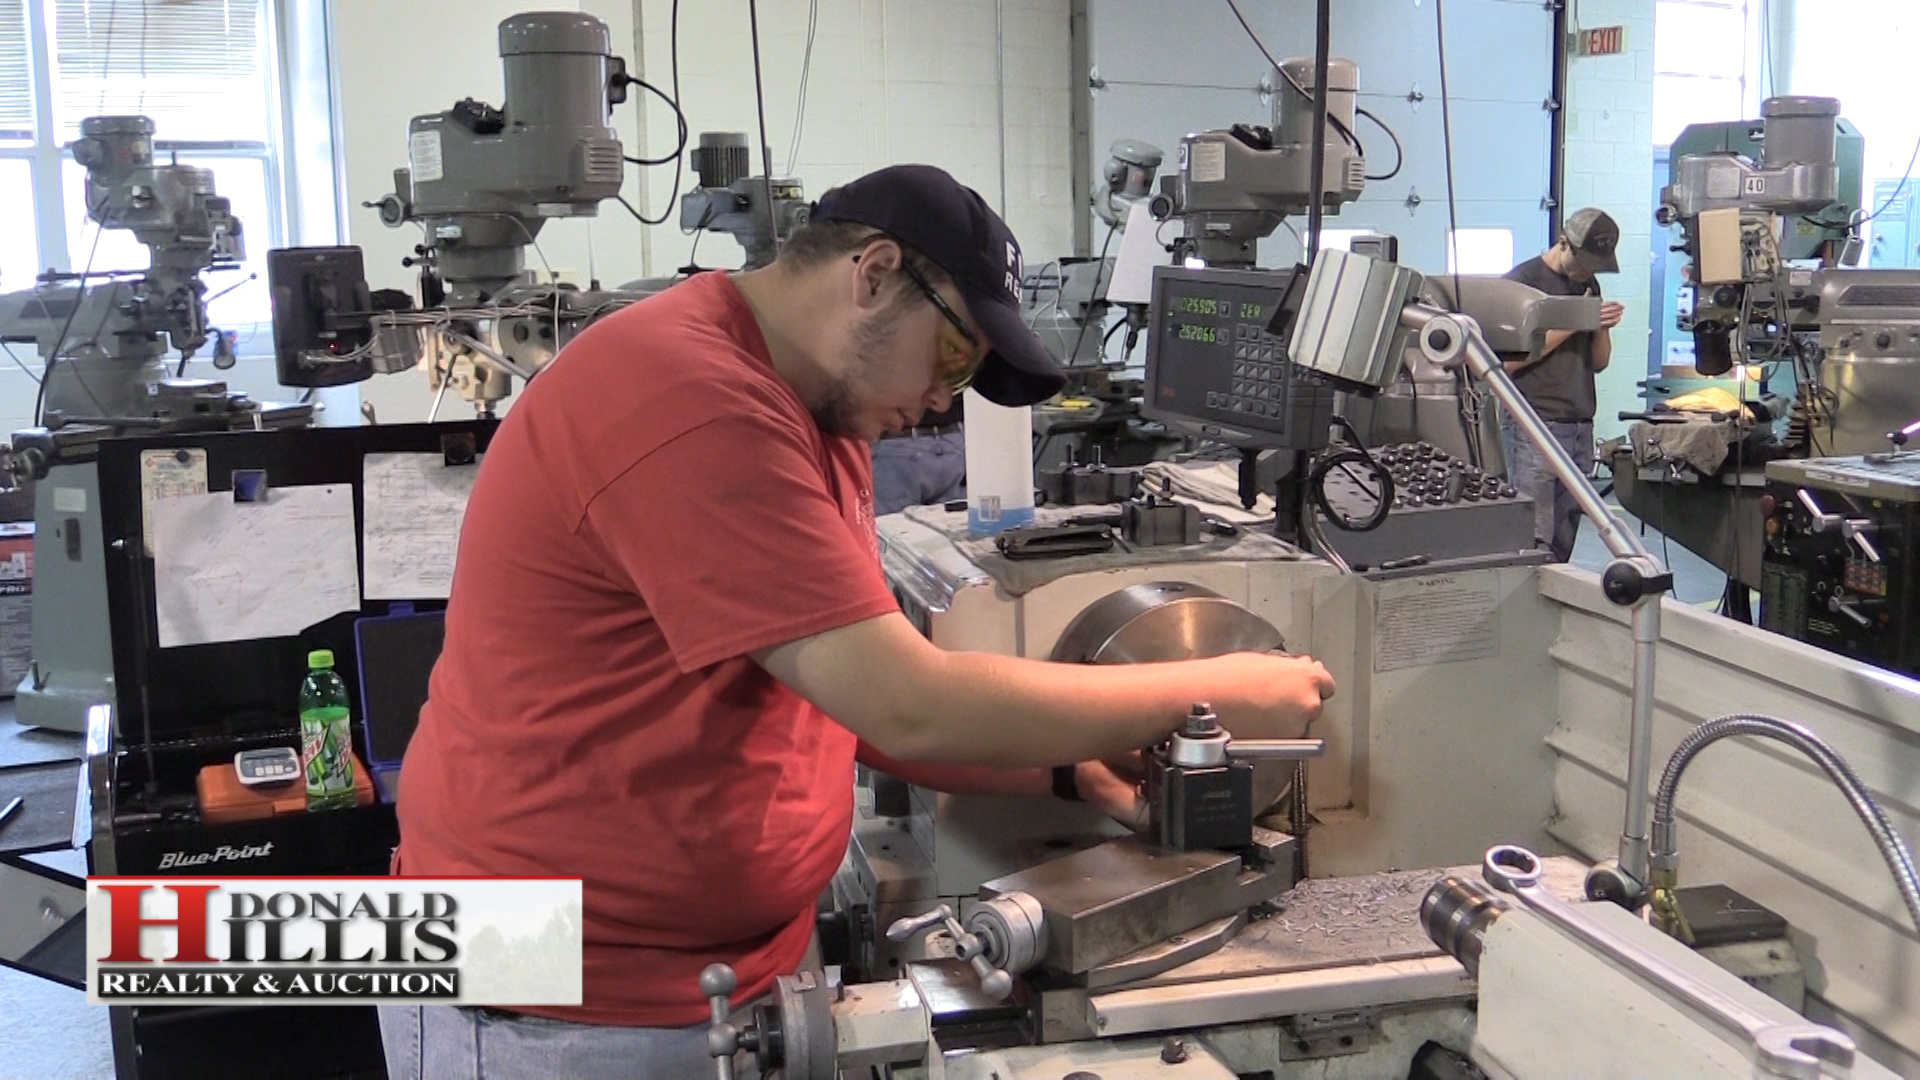 Behind the scenes at the technical college